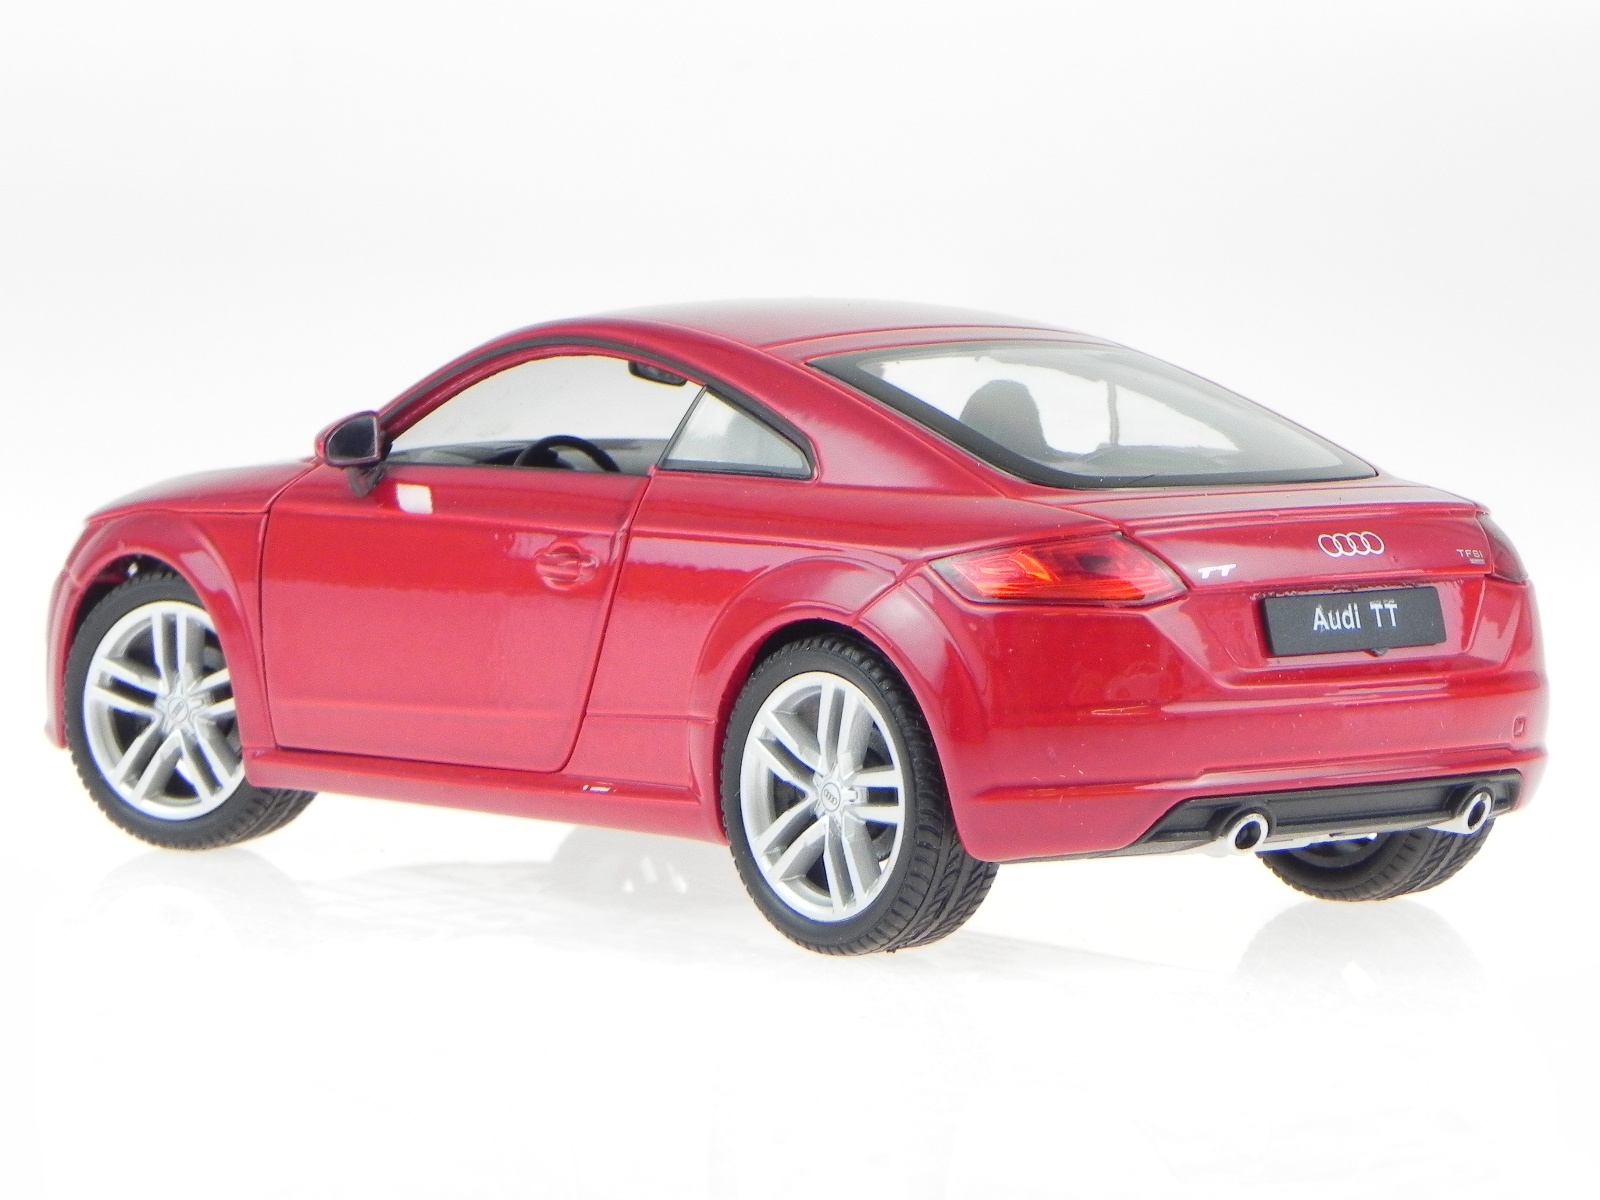 audi tt coupe 2014 rot metallic modellauto 24057 welly 1 24 ebay. Black Bedroom Furniture Sets. Home Design Ideas